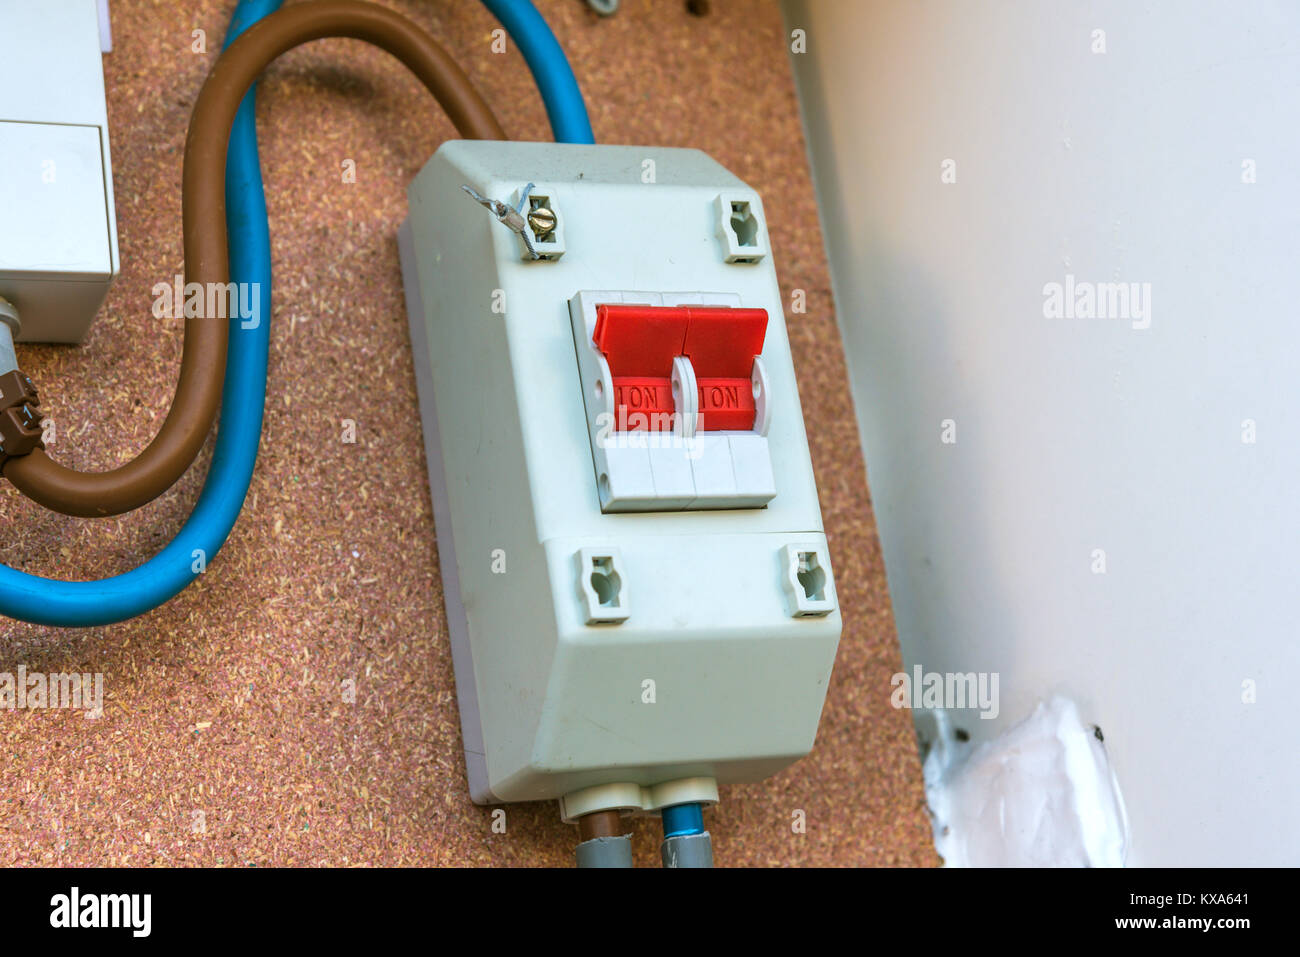 hight resolution of closeup view of automatic electric fuses box stock image